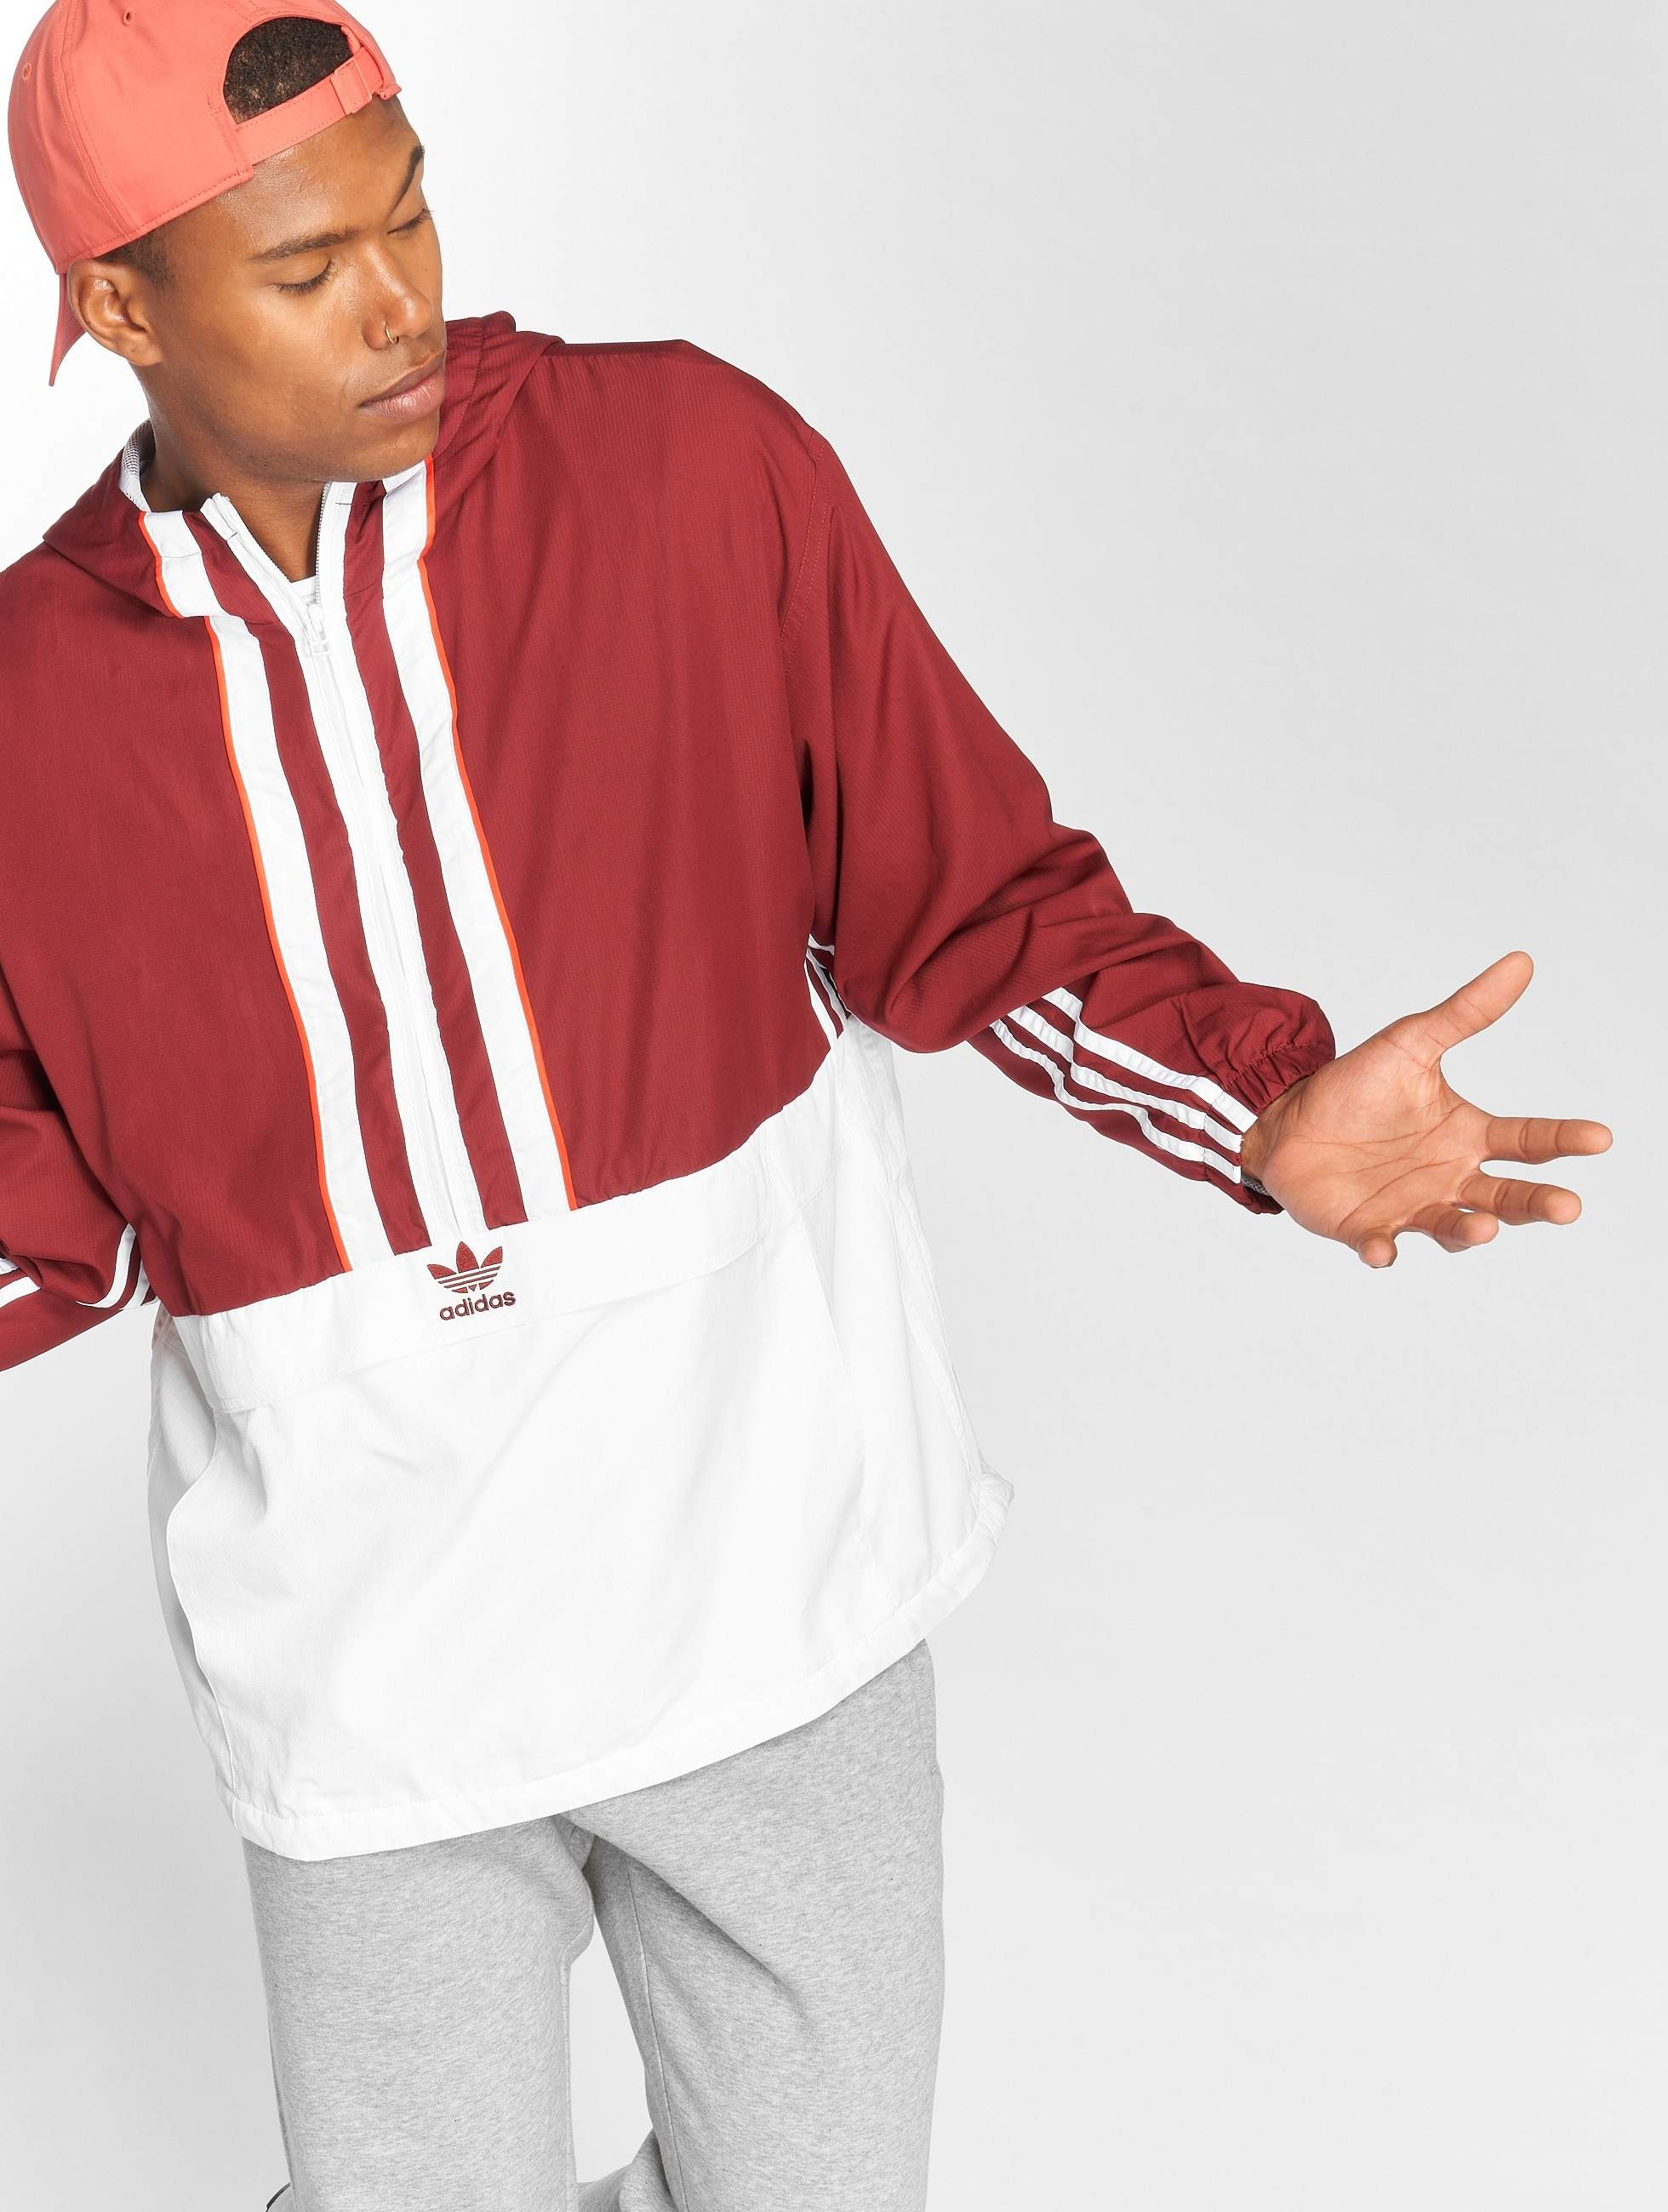 new appearance popular brand the best Auth Mi Homme Rouge Veste Adidas Originals Transition Anorak ...